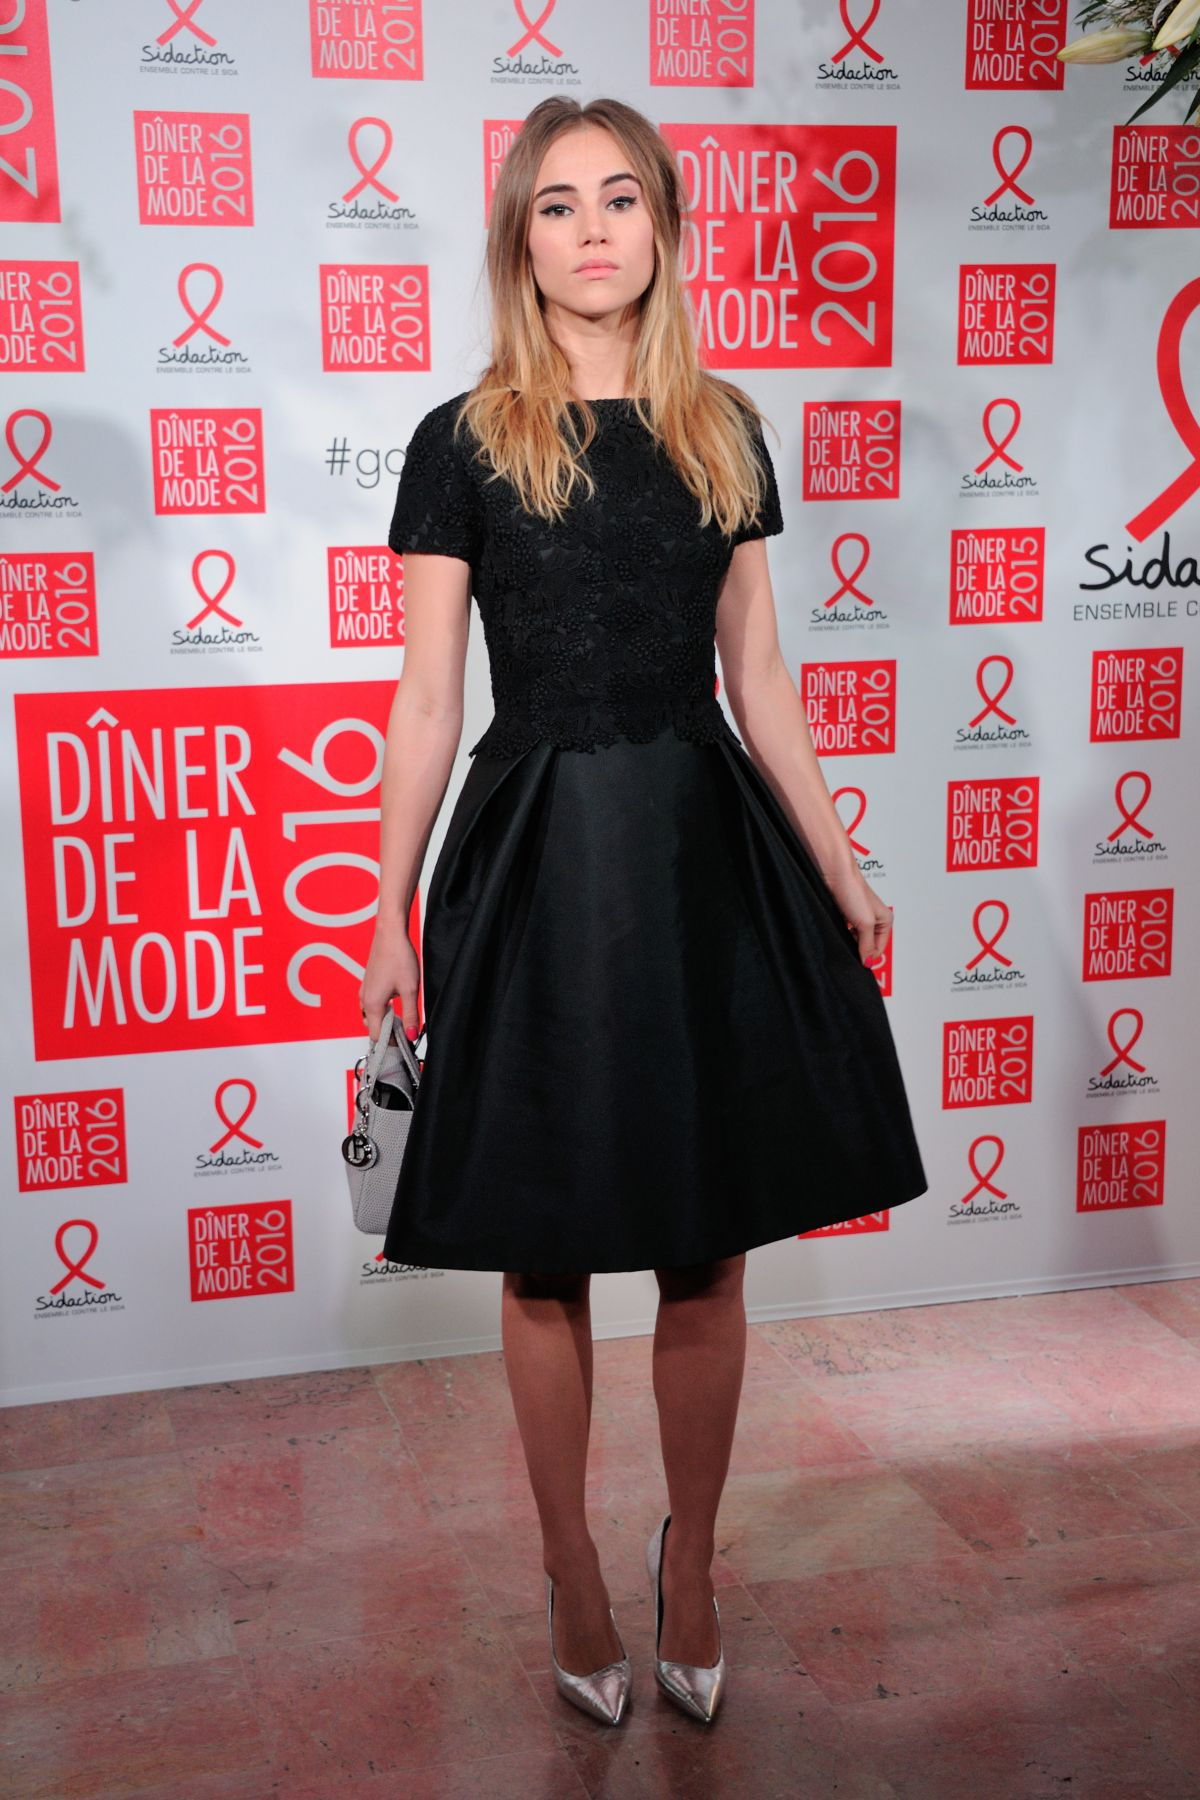 SUKI WATERHOUSE at Sidaction Gala Dinner 2016 in Paris 01/28/2016